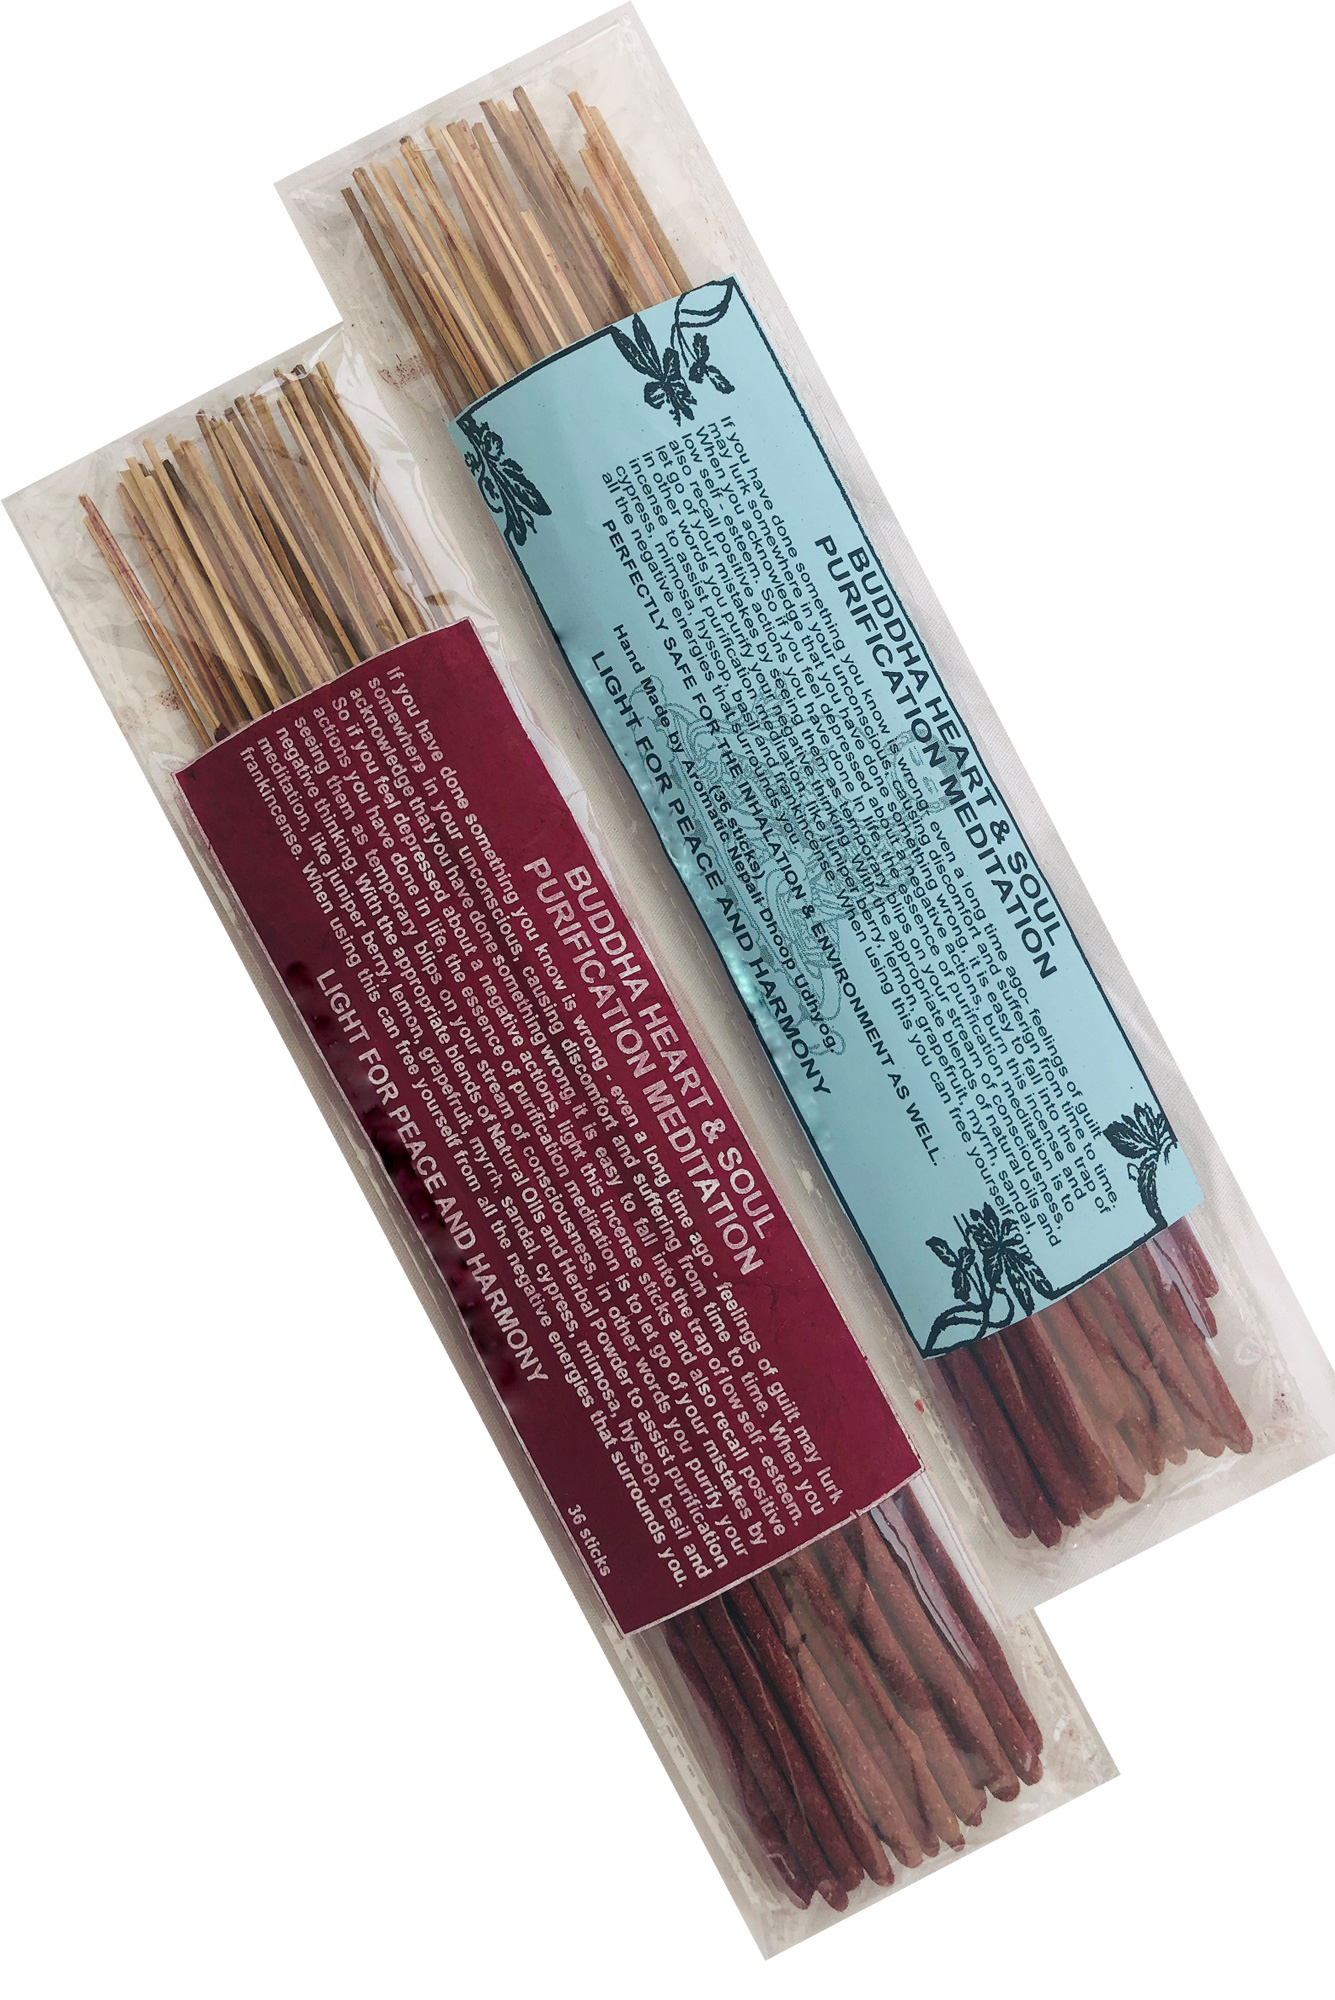 Buddha heart and soul incense